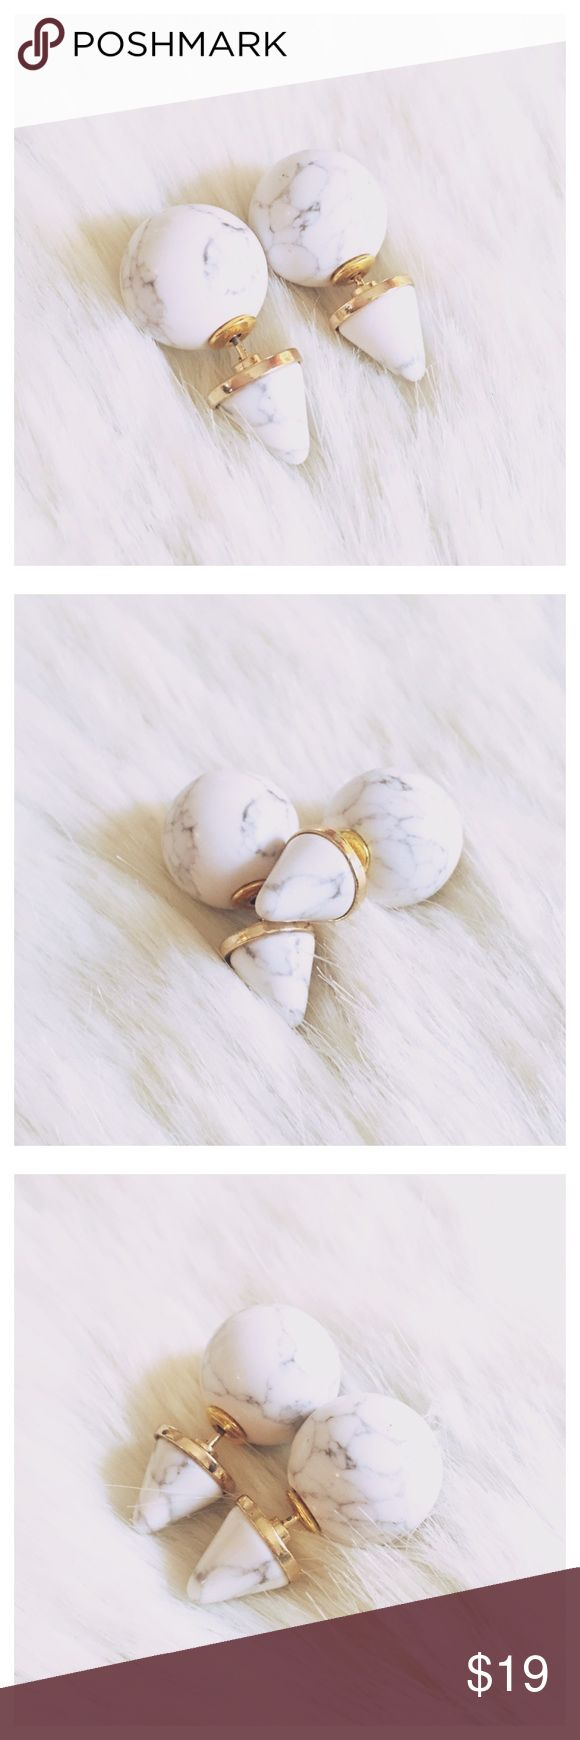 New Arrival- Marble Double Sided Earrings This listing is for a pair of marble double sided earrings. Ear jackets. Gold plated brass. No nickel or lead. Brand new! Jewelry Earrings